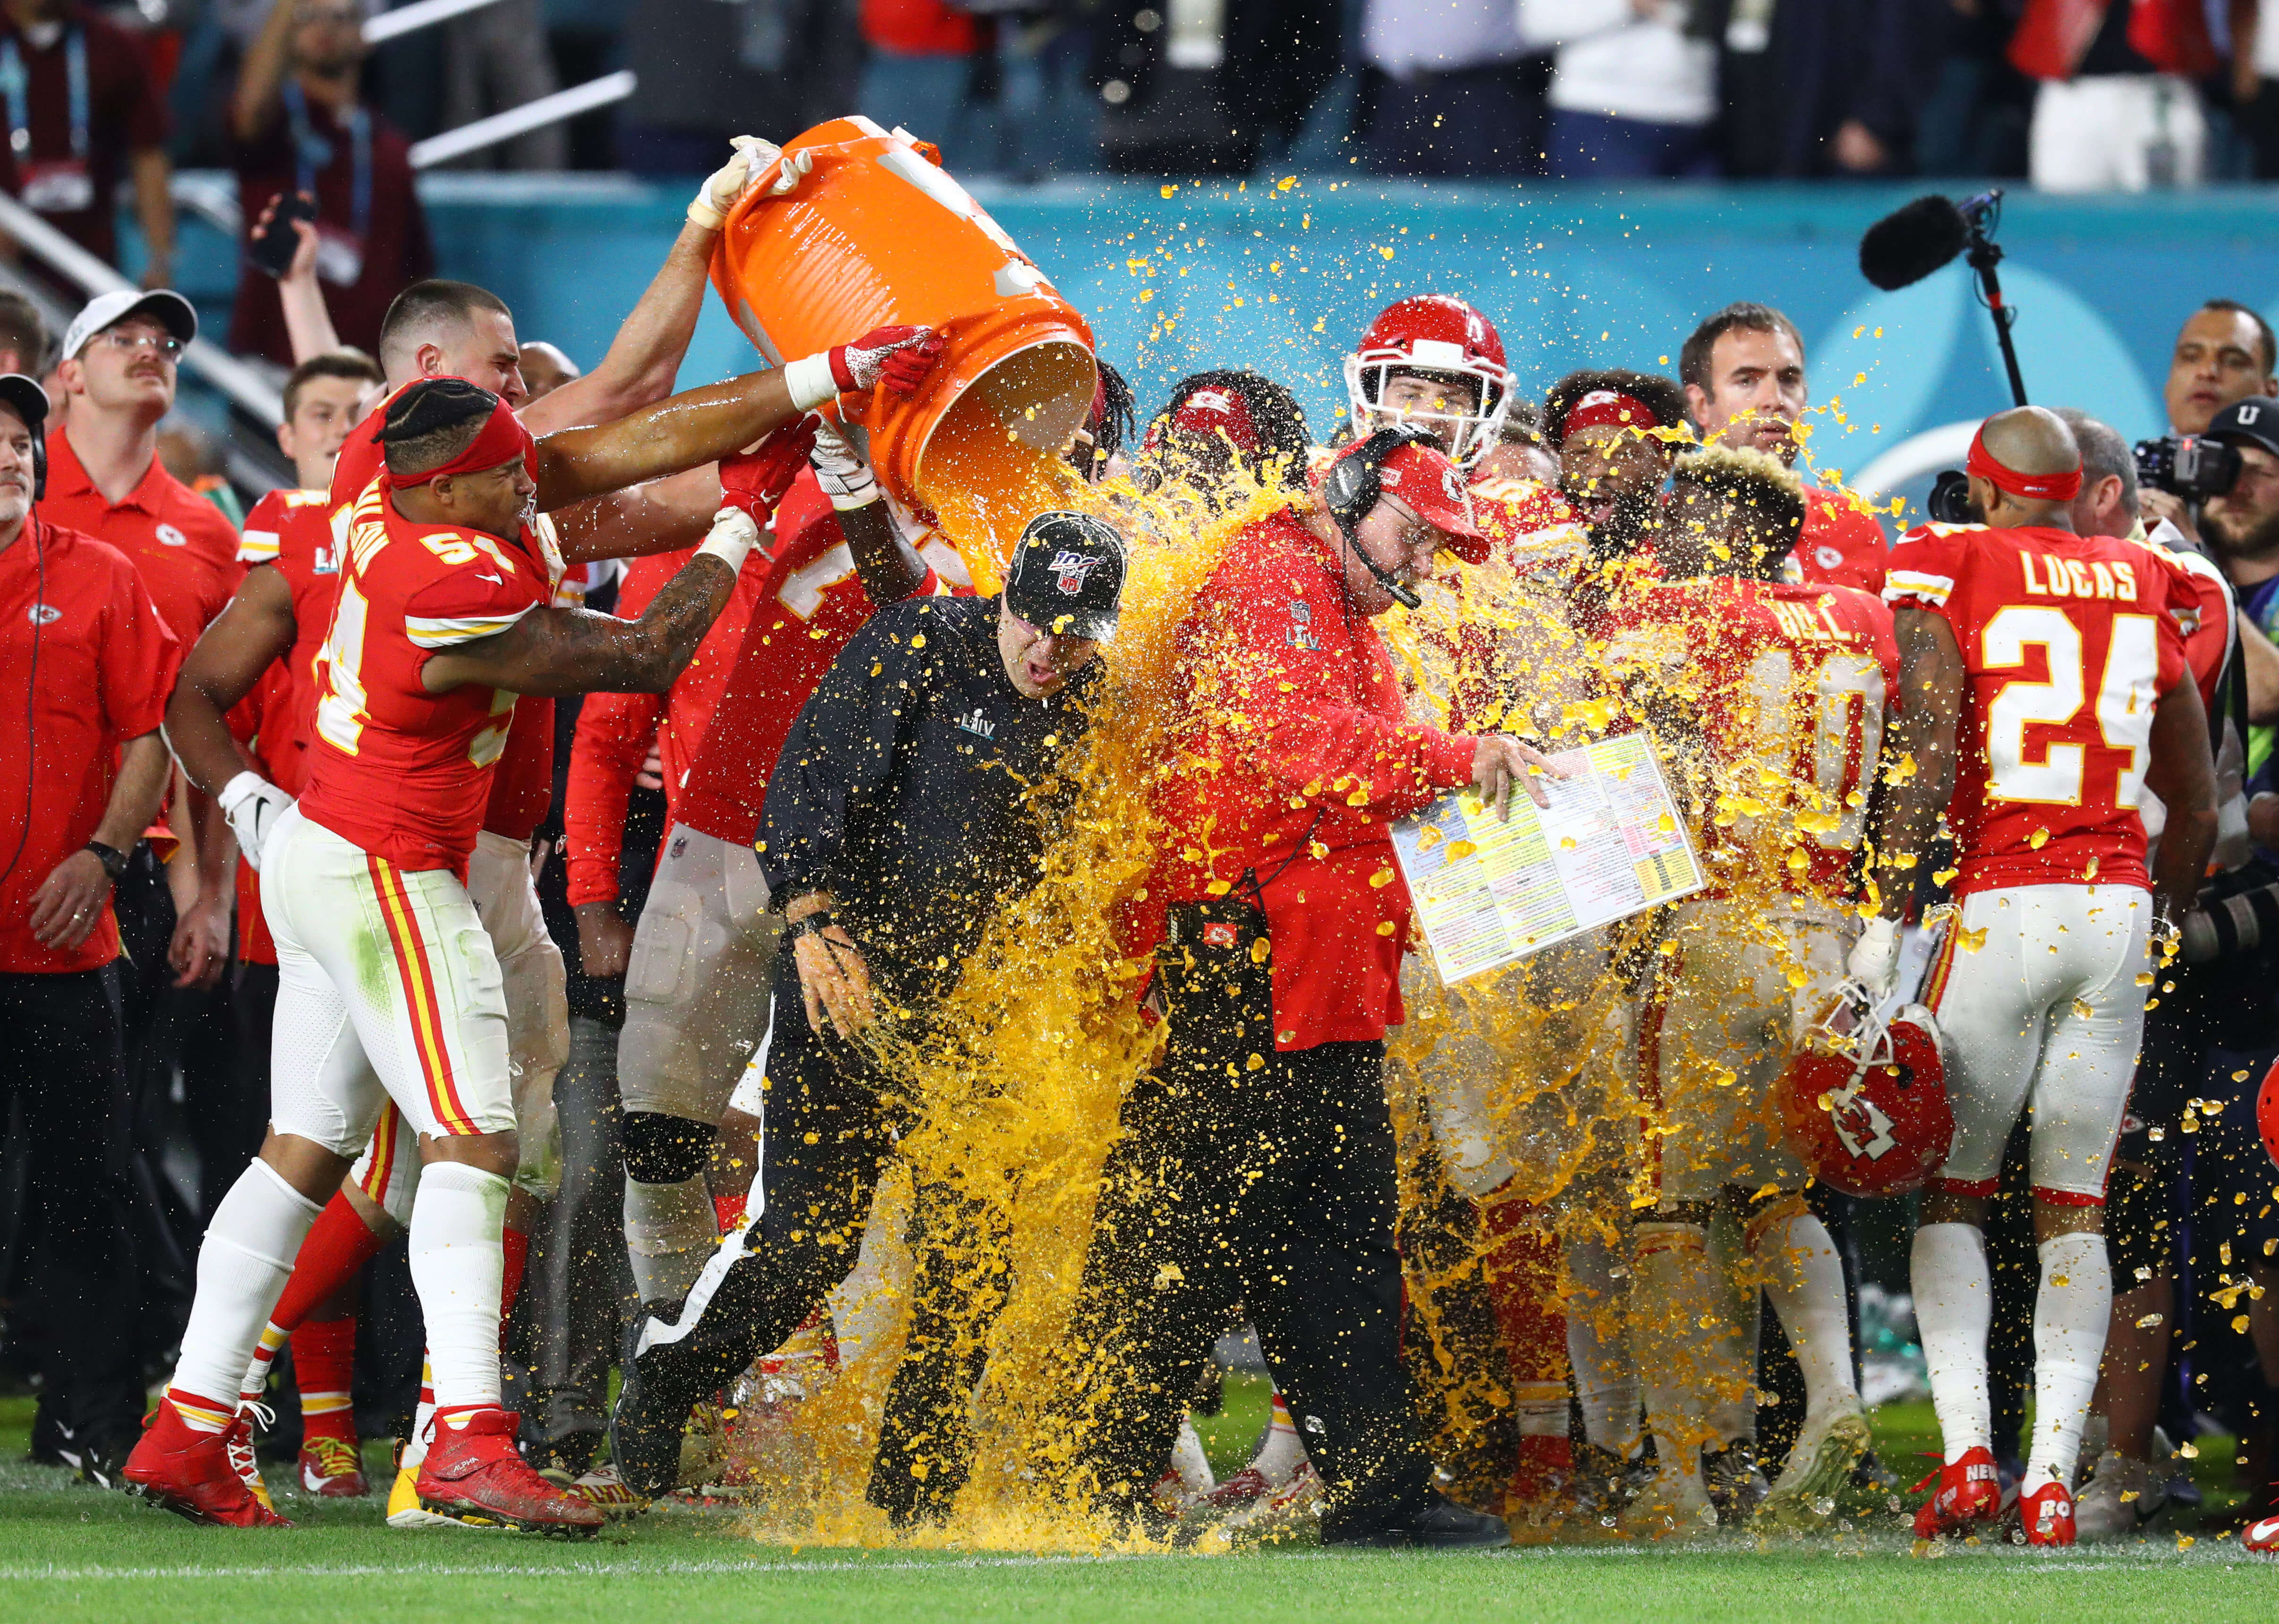 How To Bet - The ultimate guide to betting on the color of the Gatorade bath